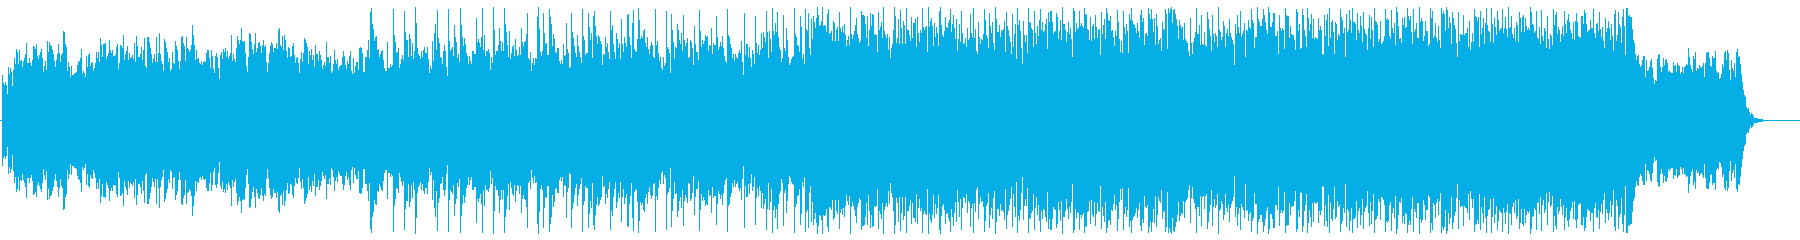 Gorgeous and sparkling synthesizer songs's reproduced waveform